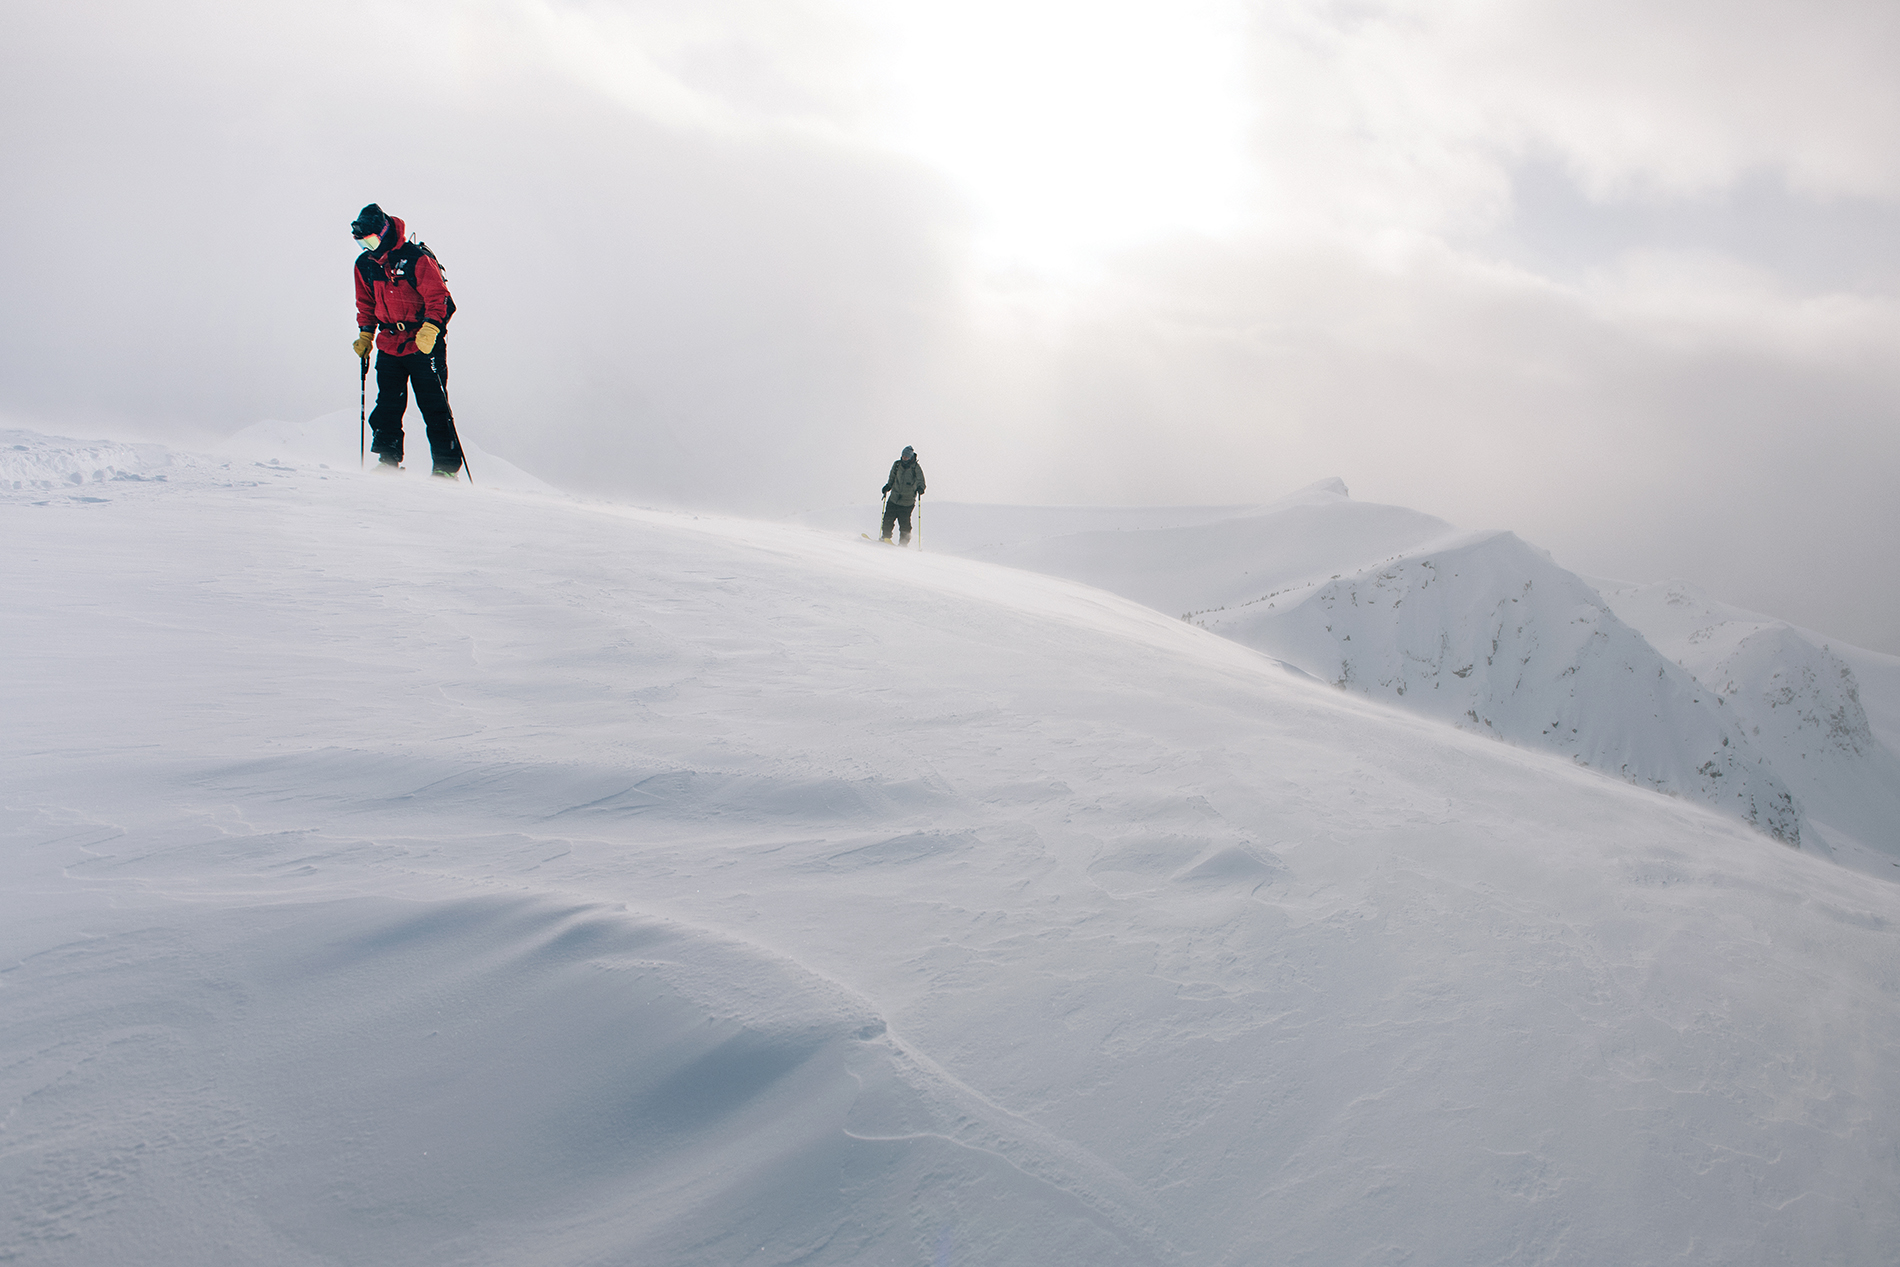 Duncan Adams and Antti Ollila ascending a classic ridgeline in the BC wilderness. Photo: Max Lowe